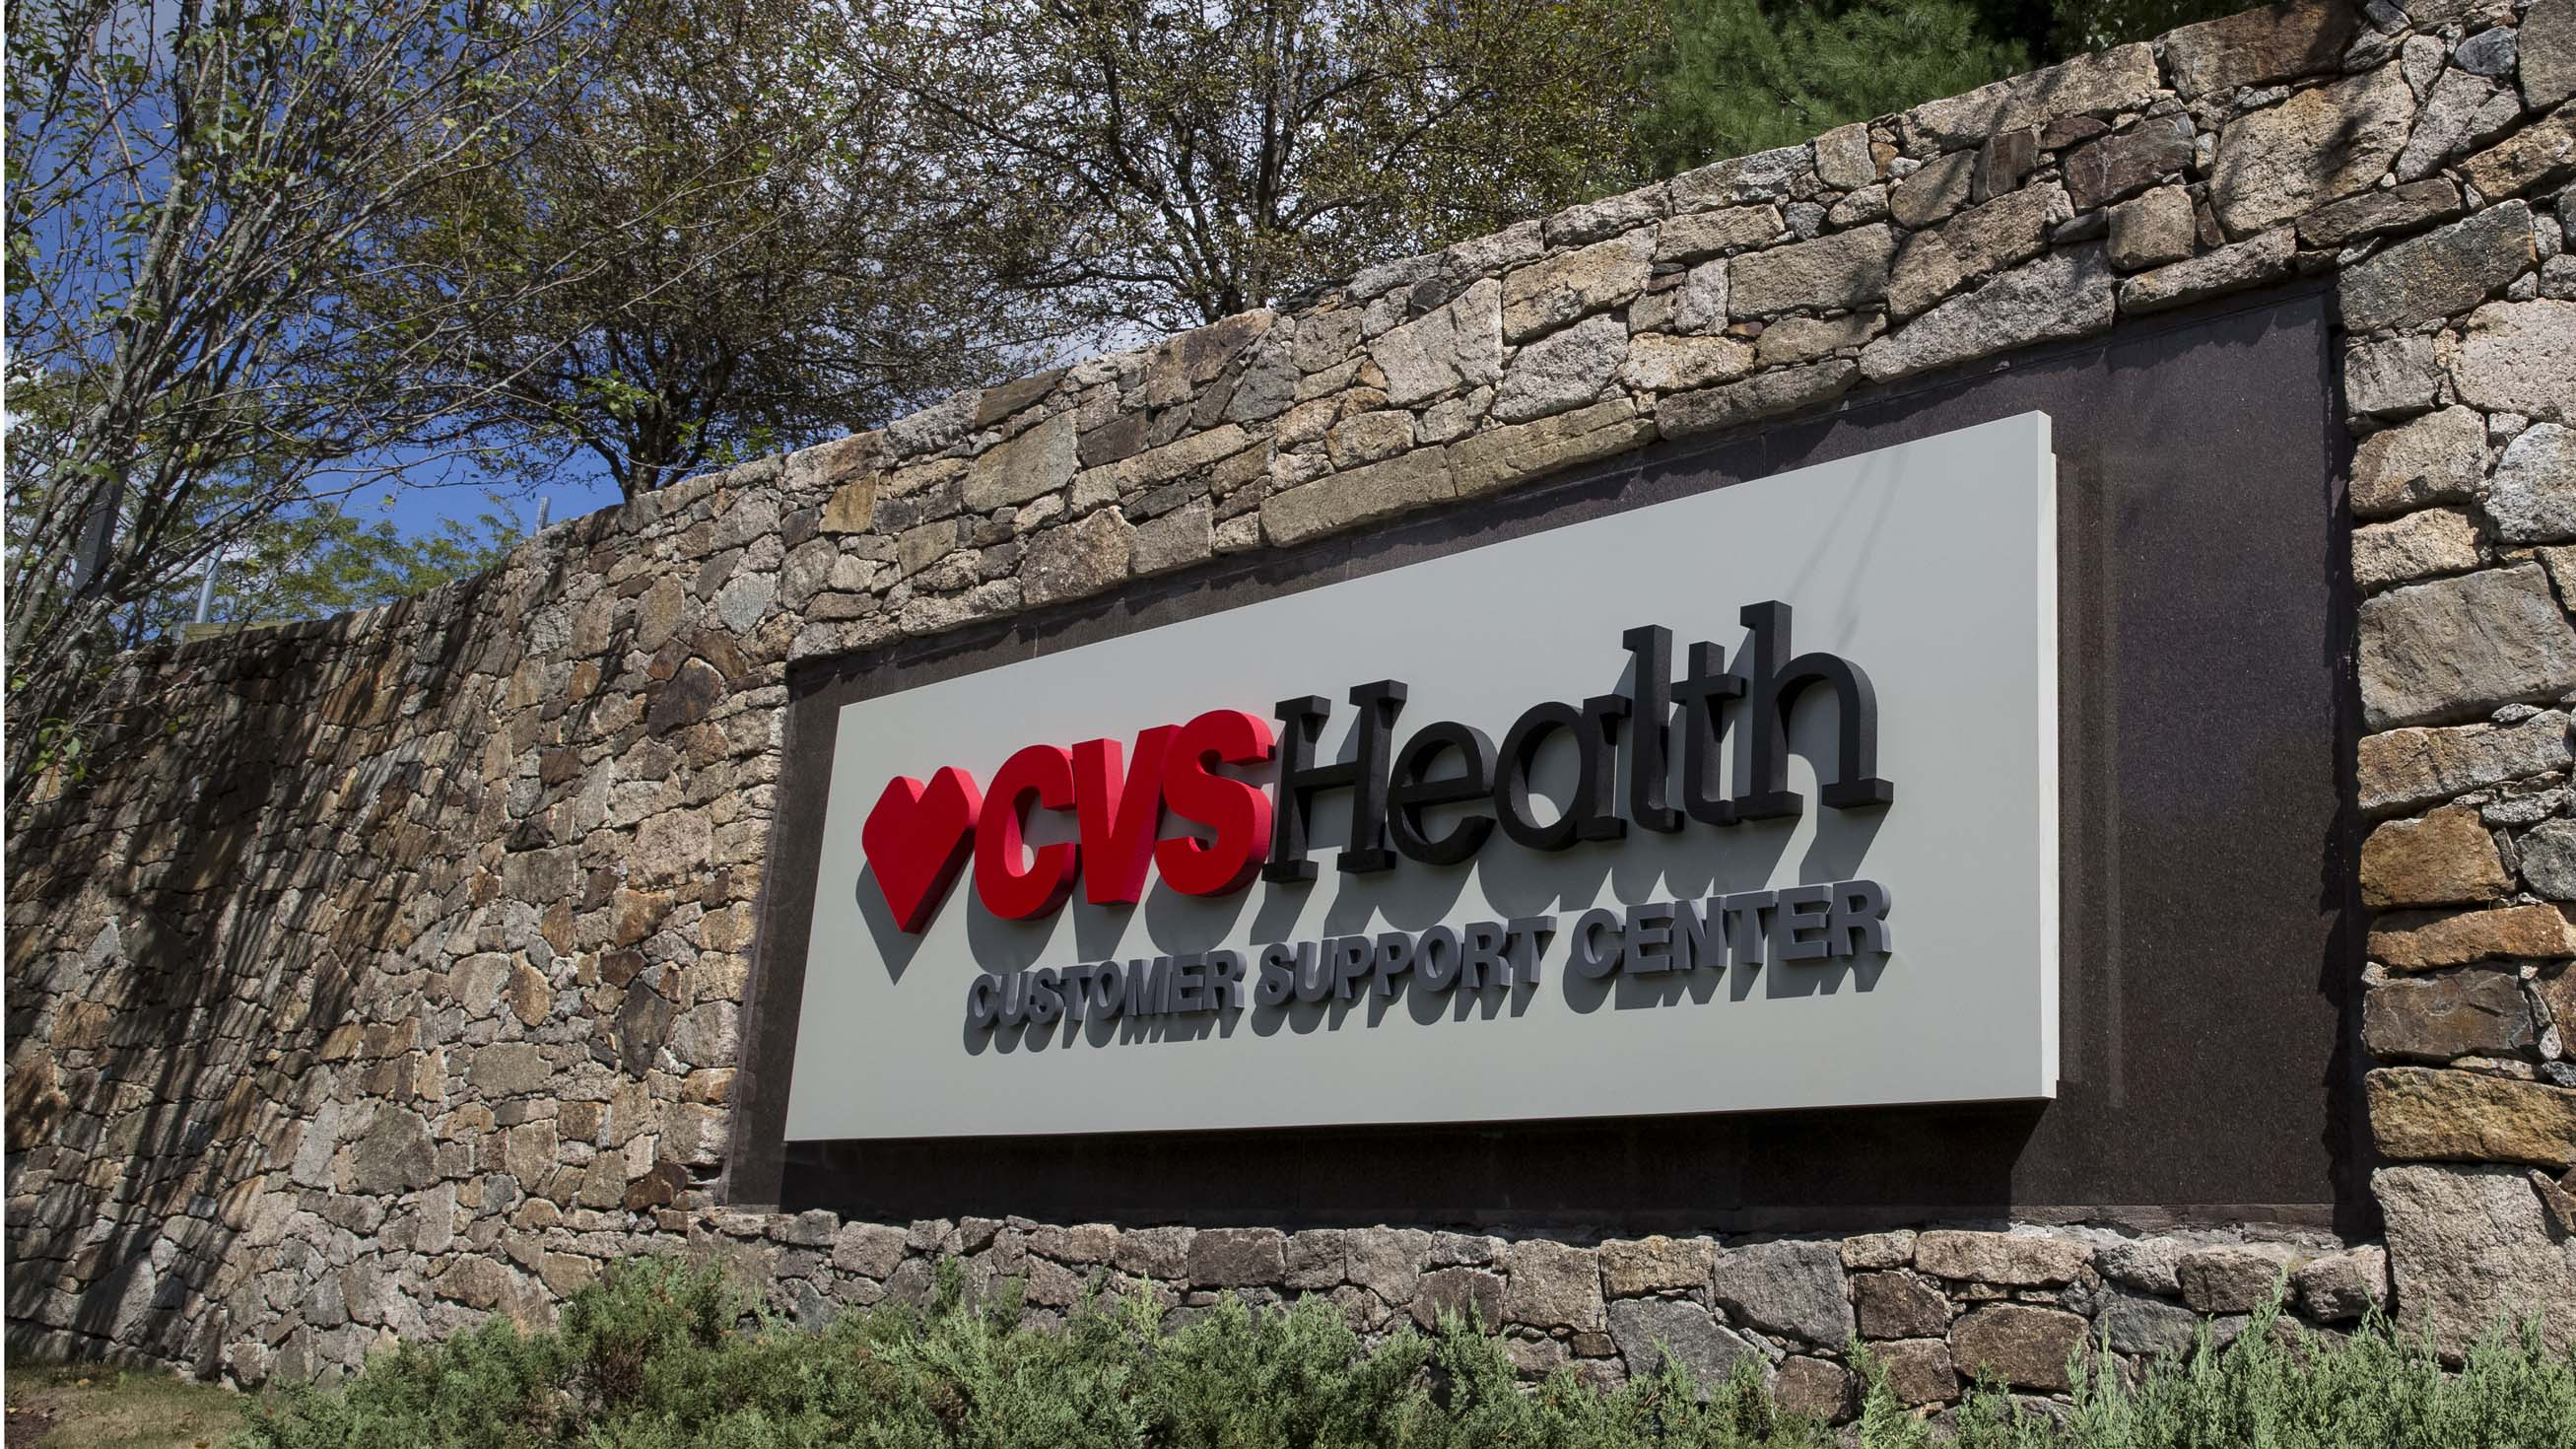 cvs caremark announces name change to cvs health to reflect broader health care commitment